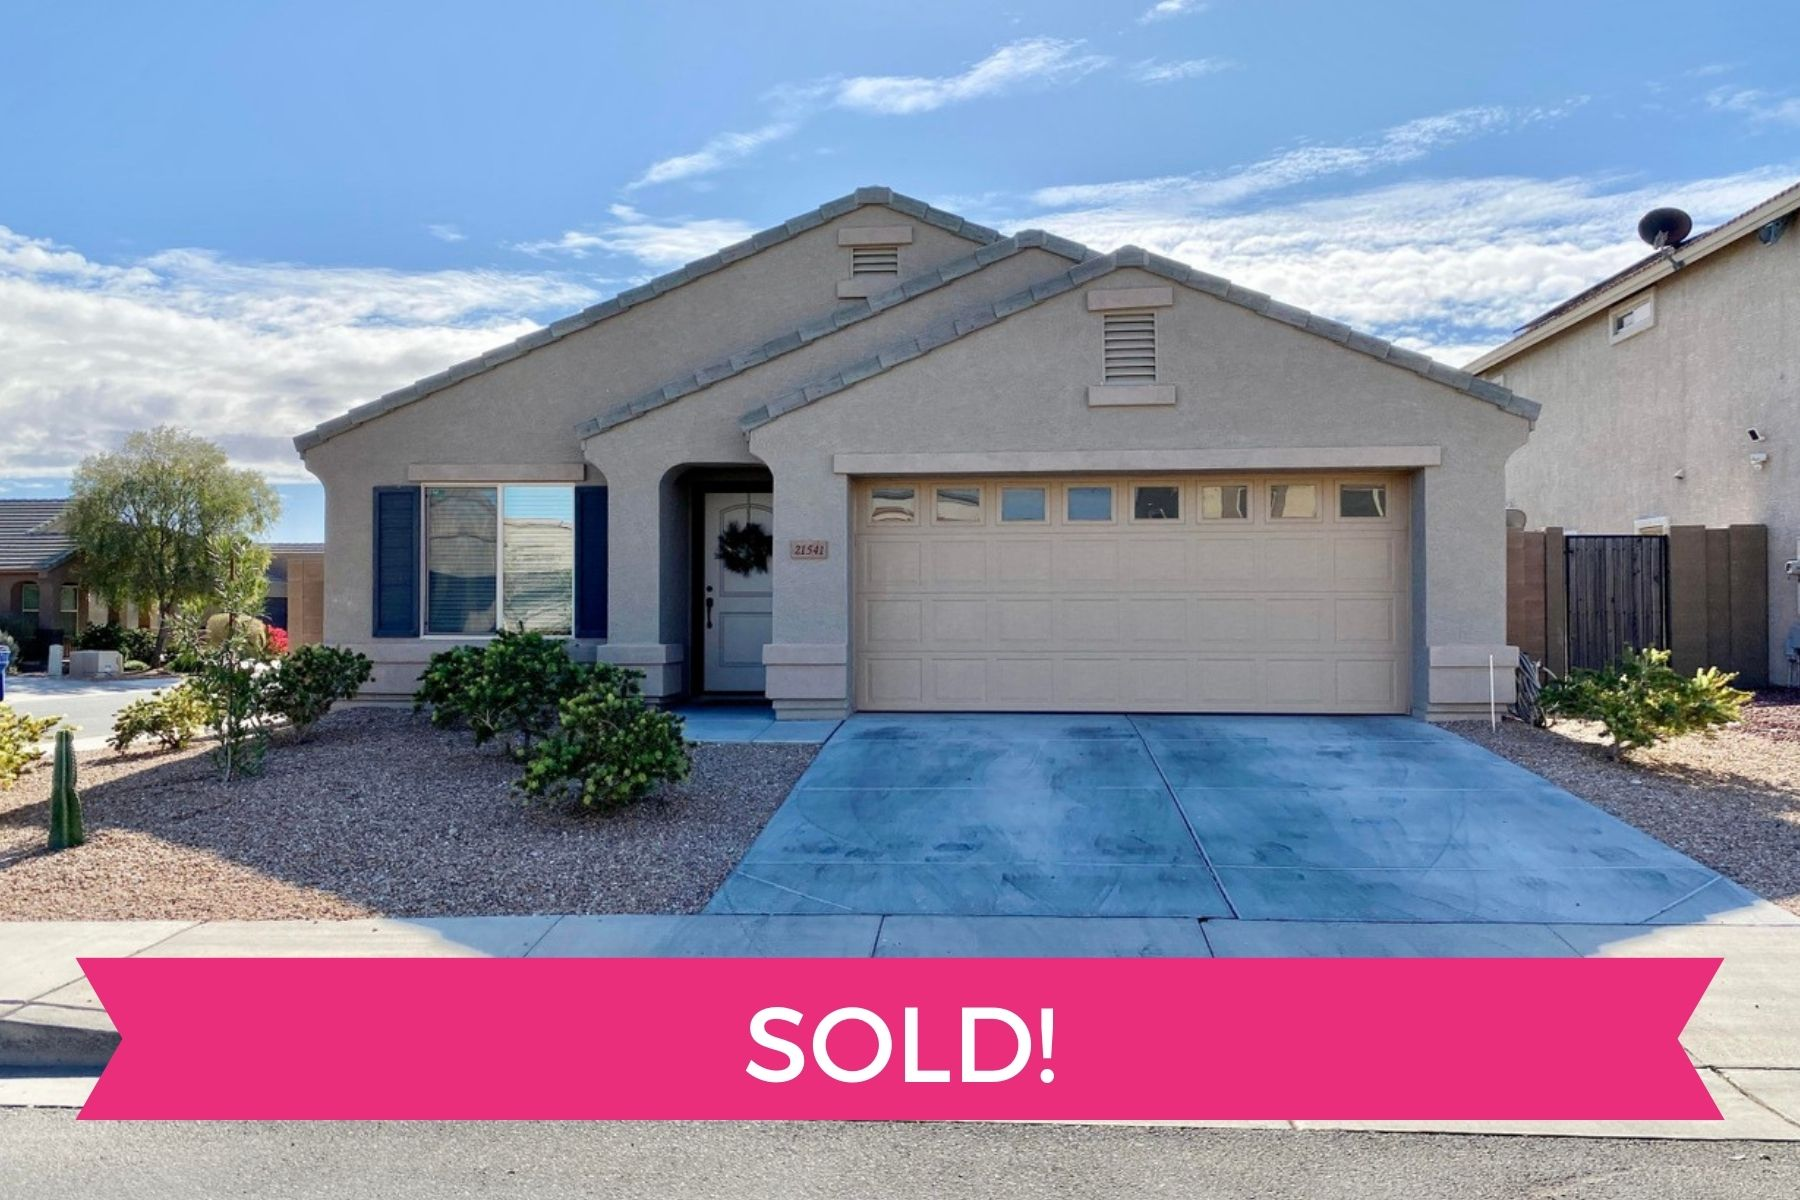 home sold by Phoenix and Scottsdale realtors Sonoran Home Group